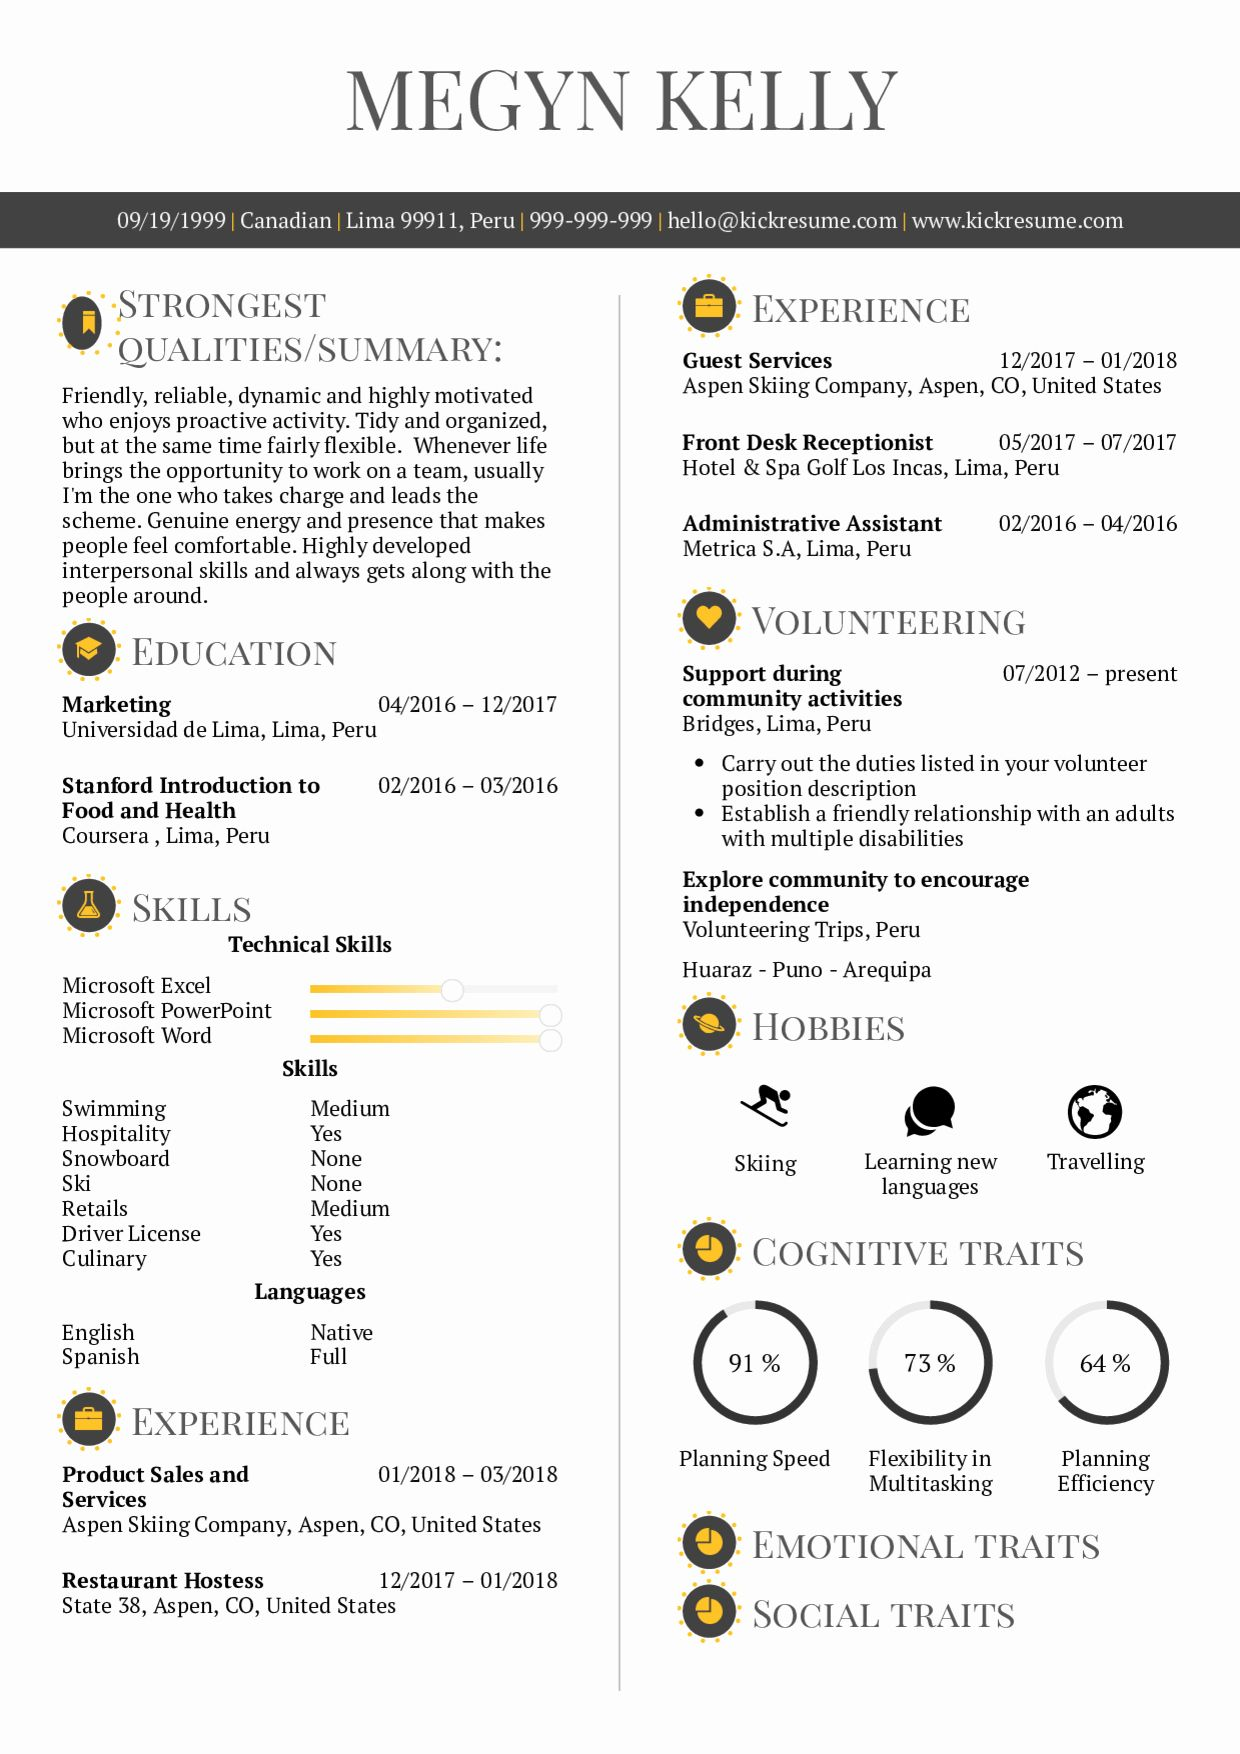 20 Front Desk Receptionist Resume Good resume examples